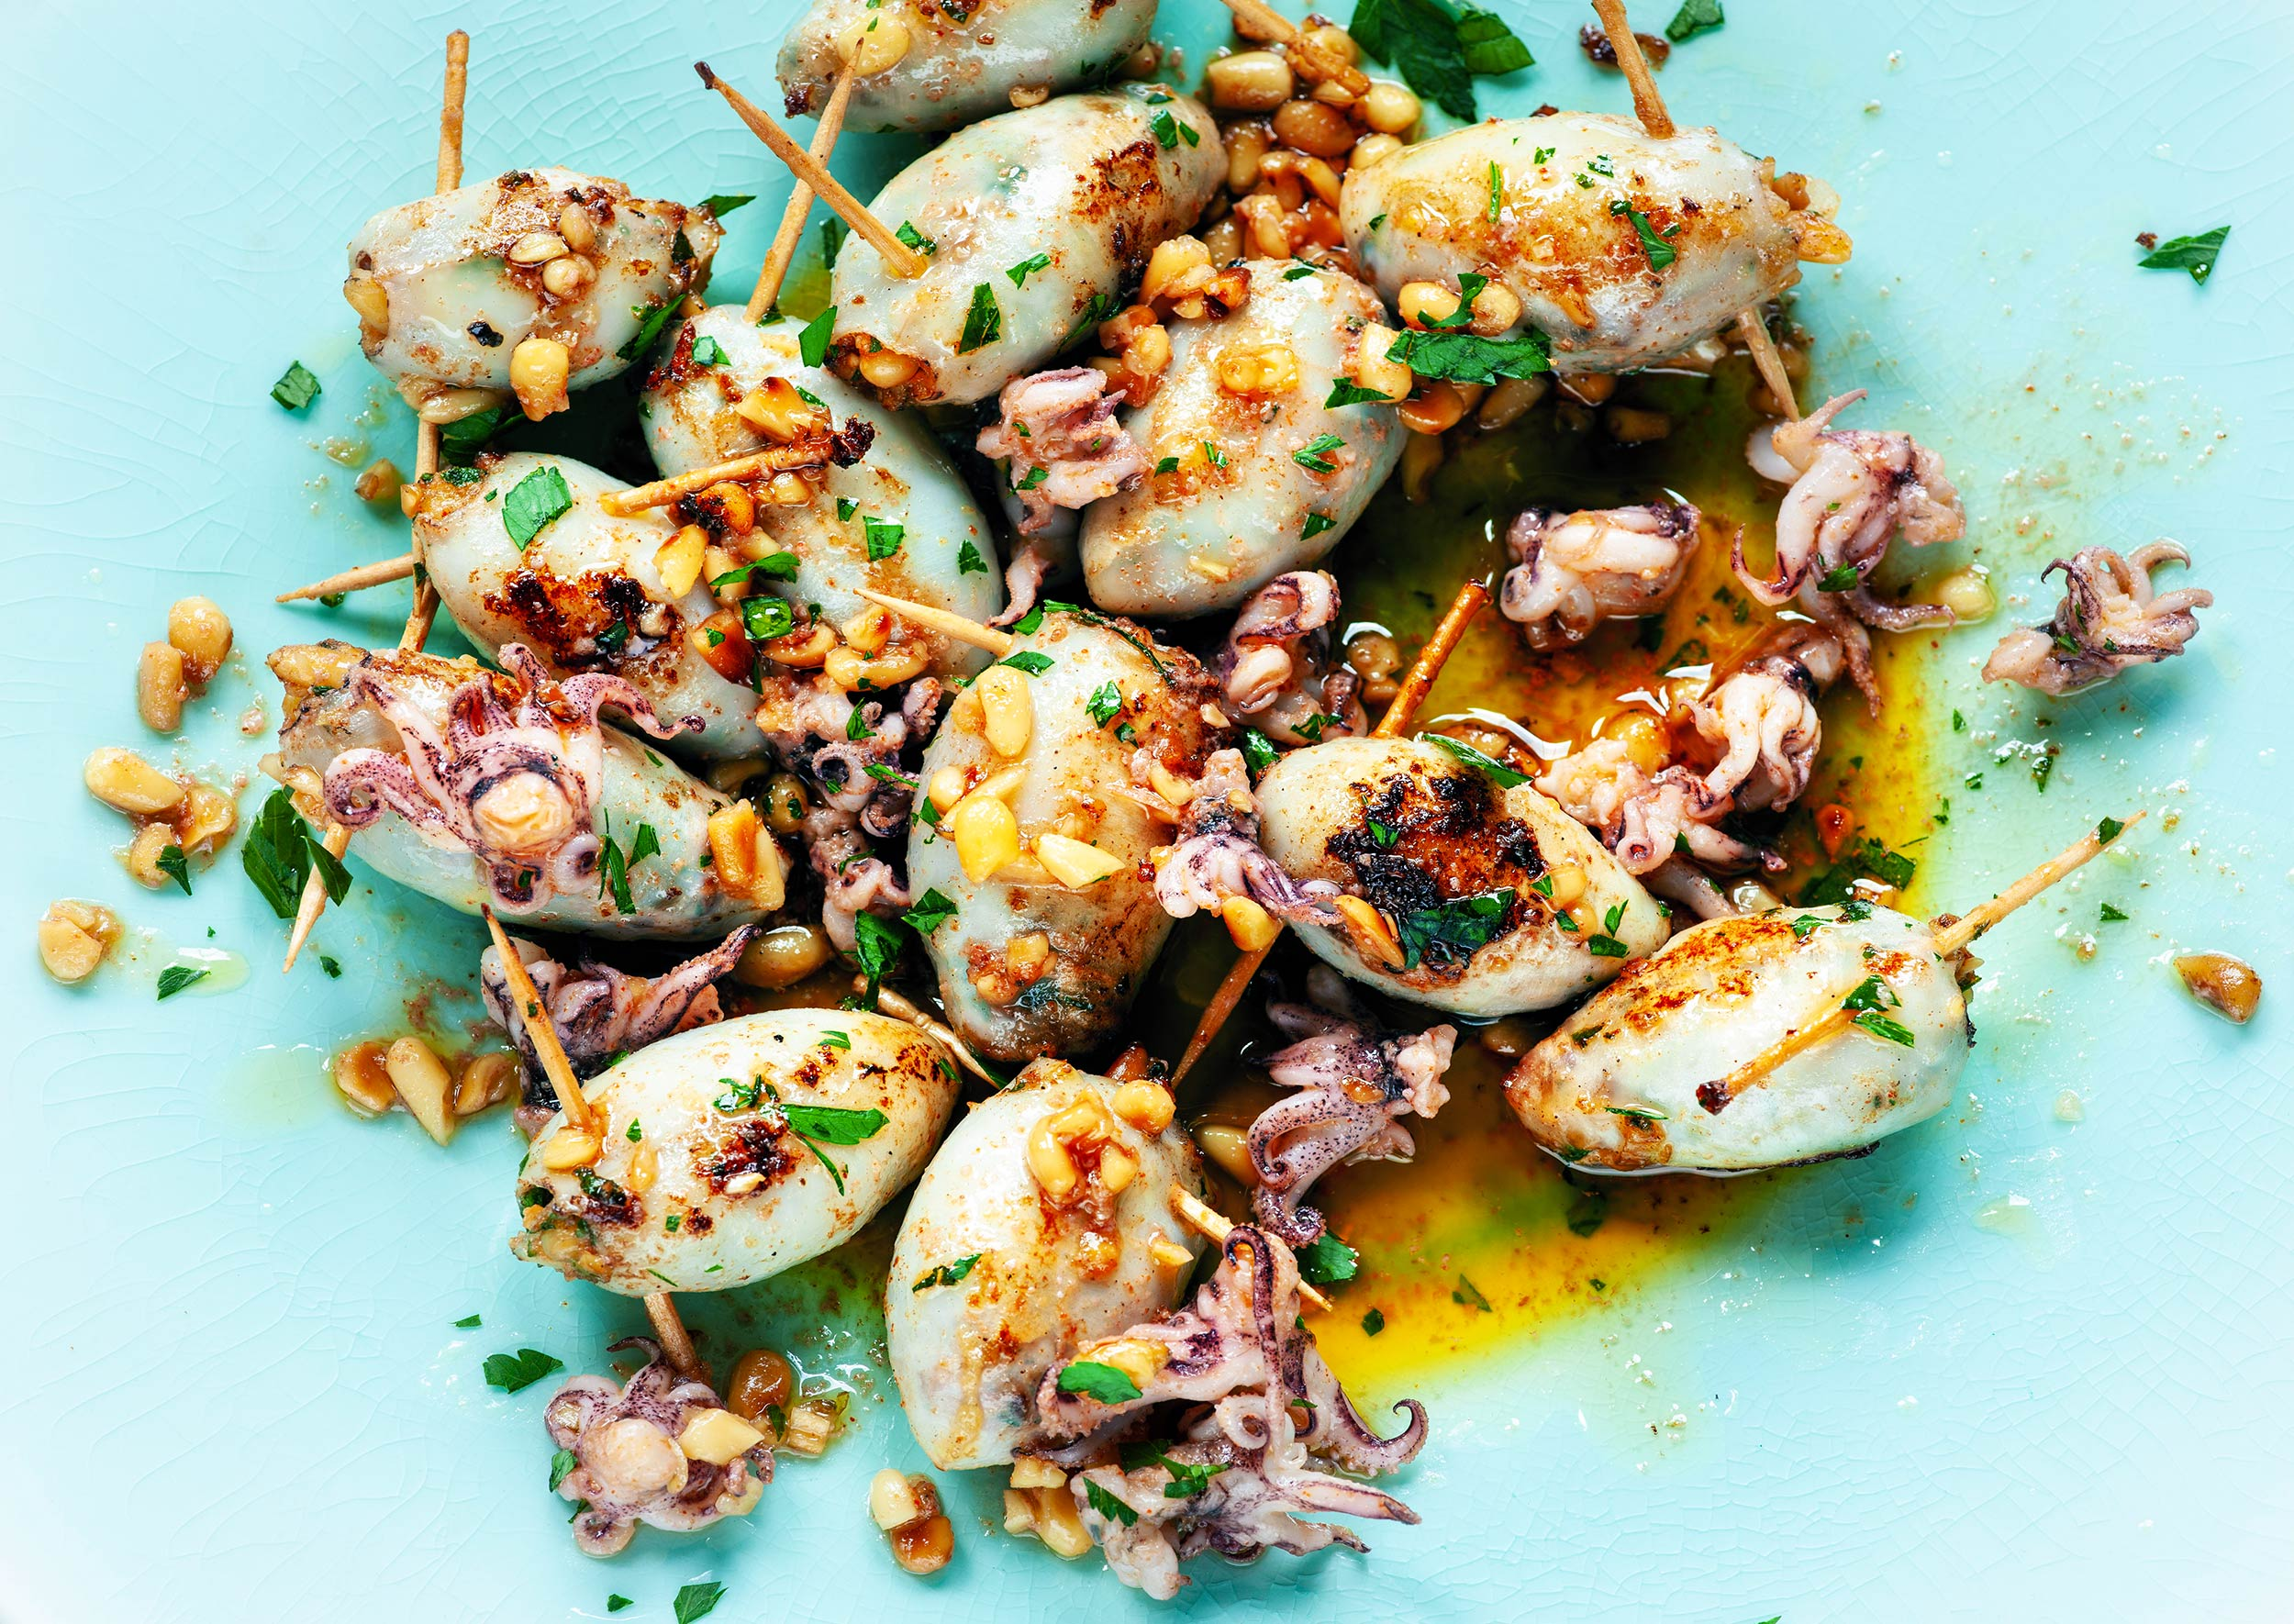 Stuffed-Squid-with-Pine-nuts|London food photographer